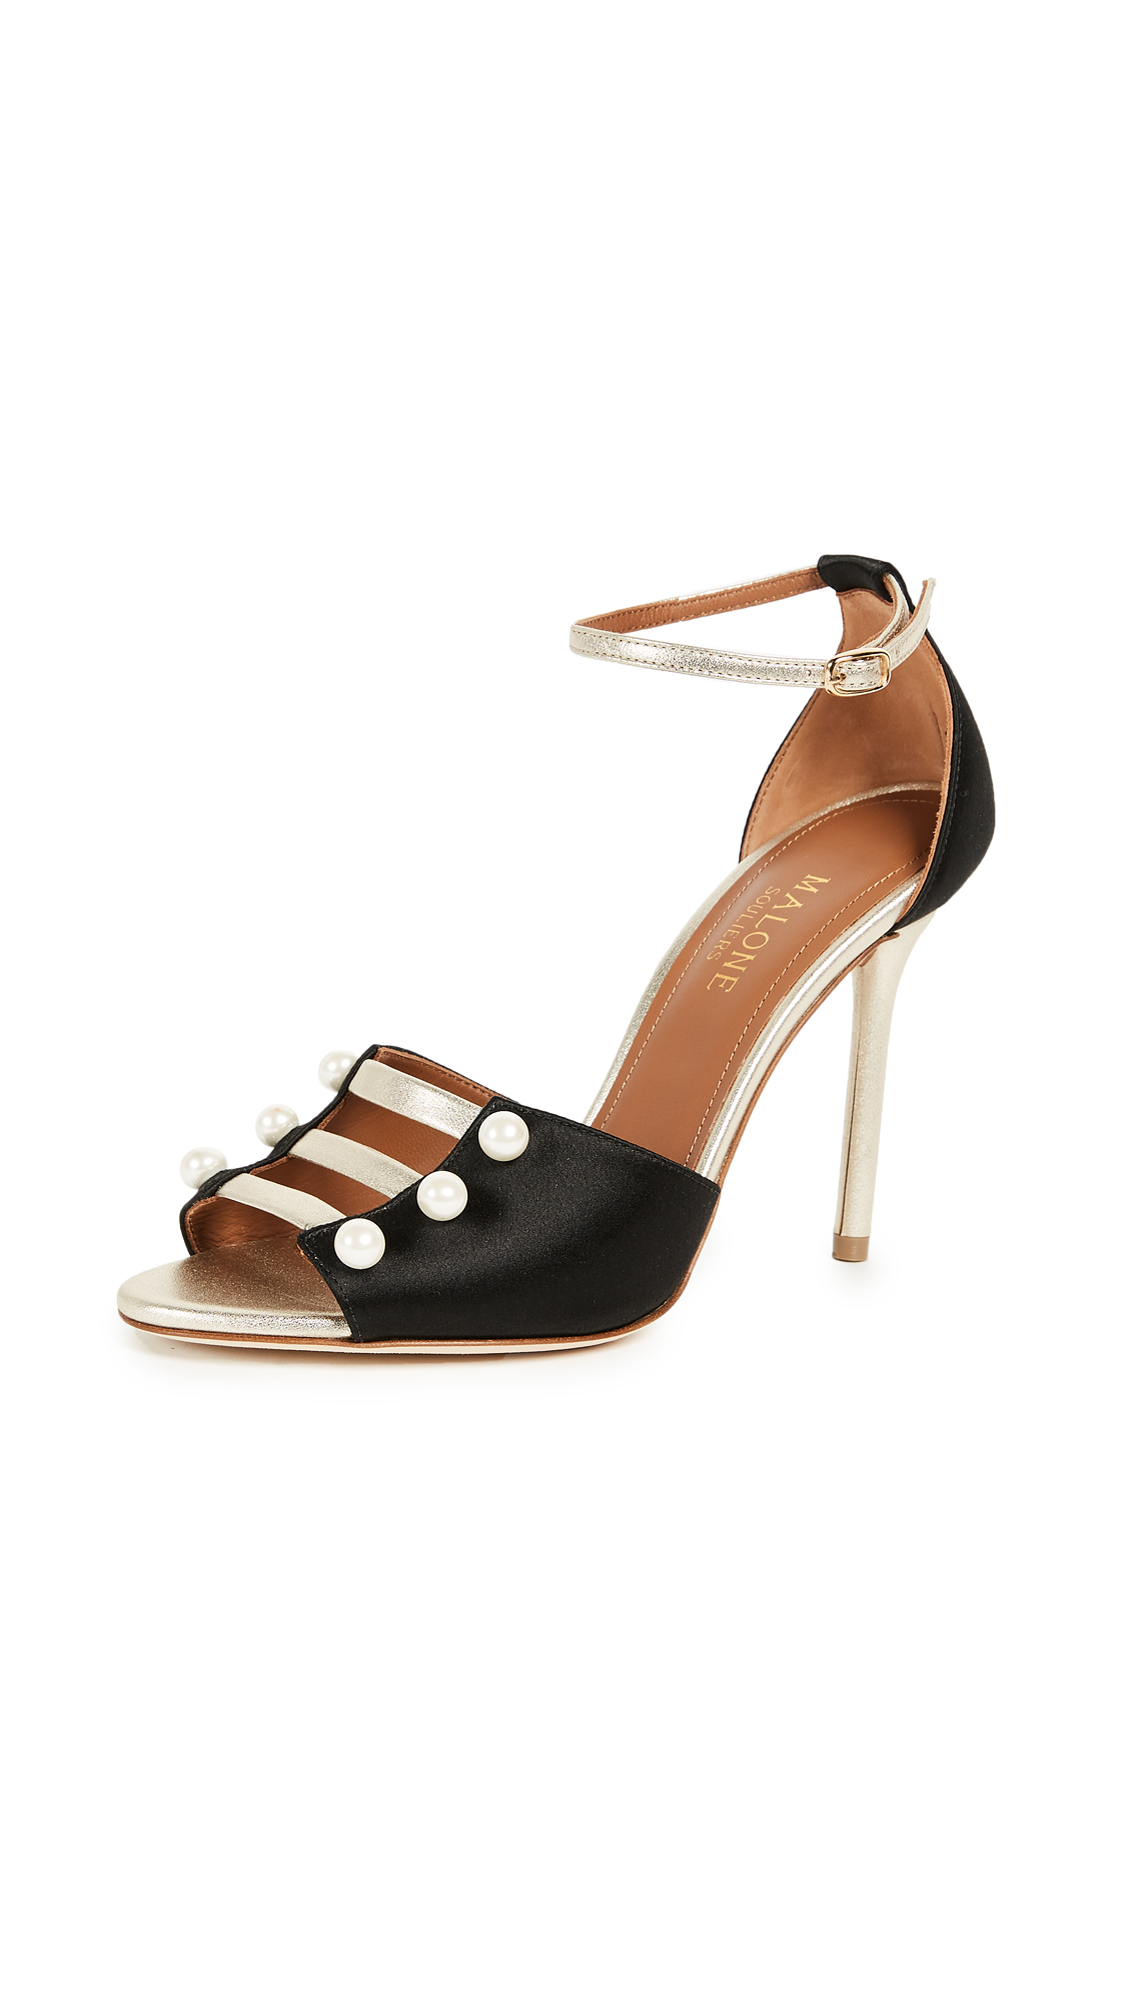 Malone Souliers Zuzu 100mm Sandals